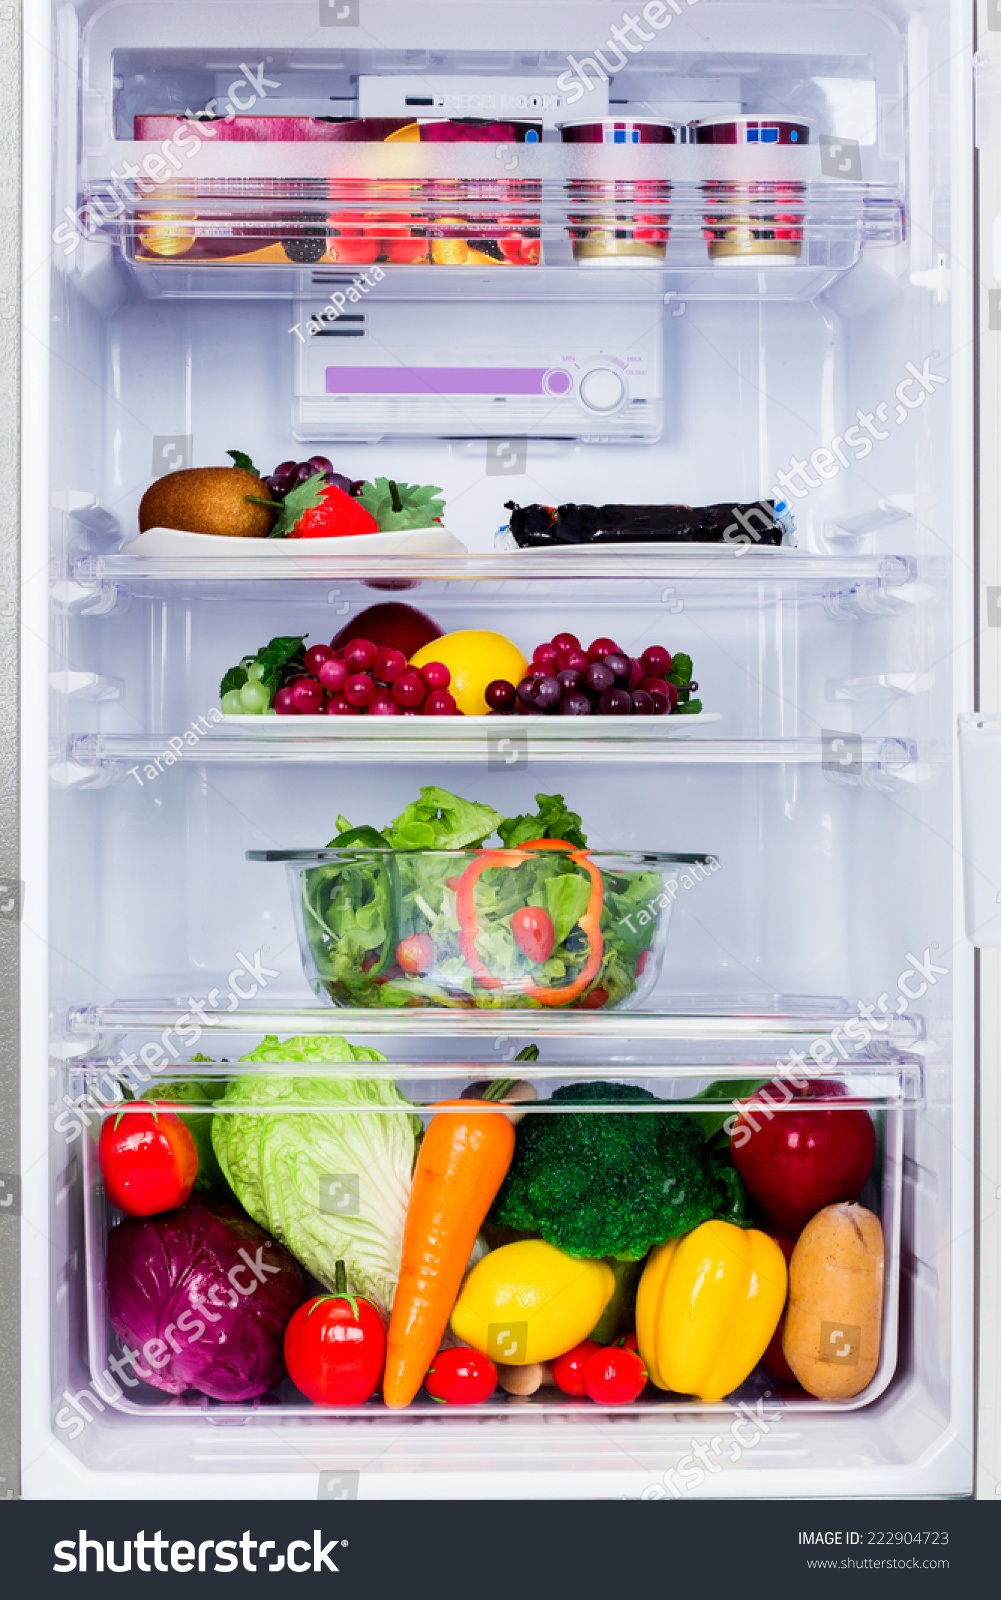 Inside The Healthy Refrigerator With Fruits And Vegetable